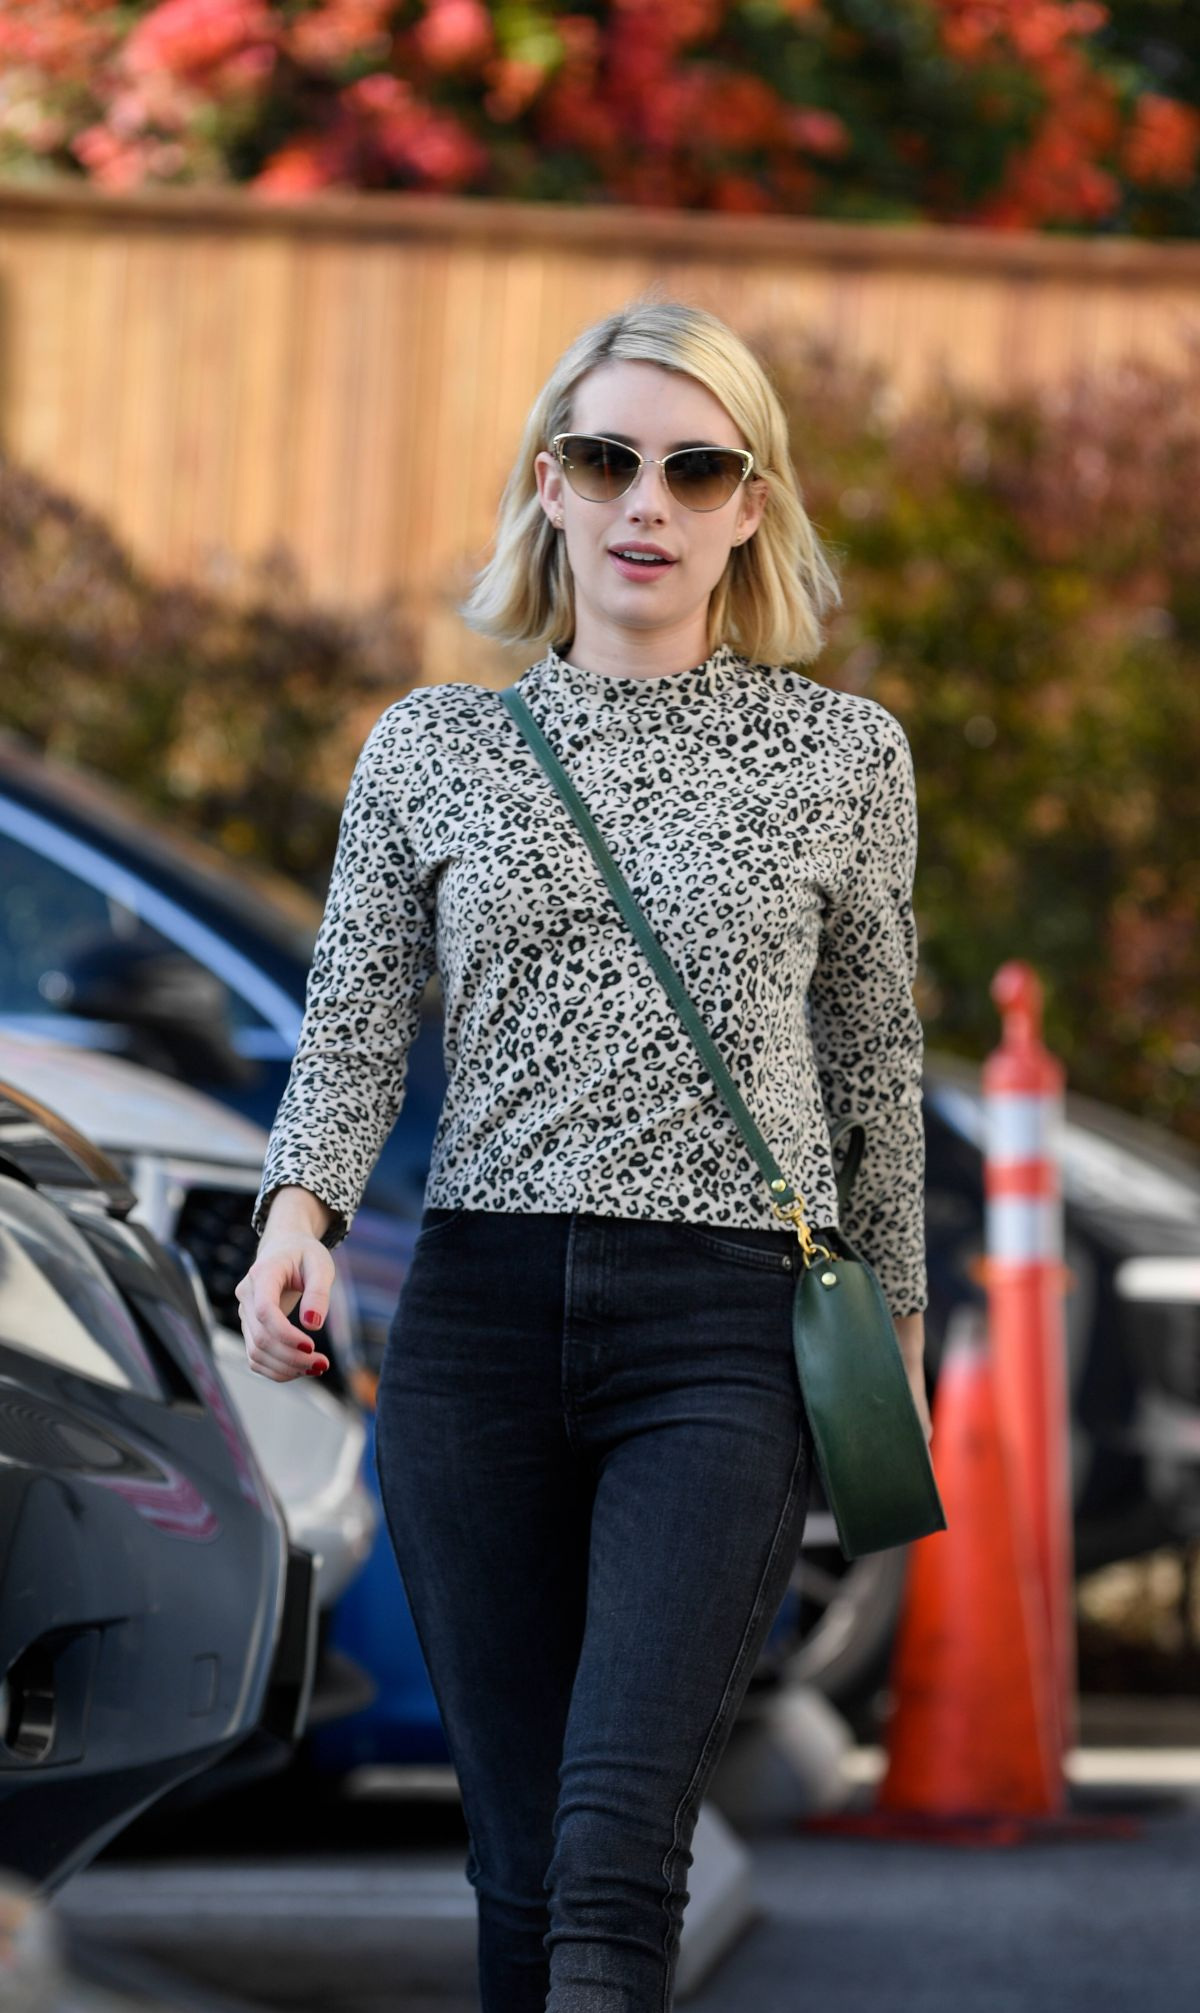 EMMA ROBERTS at a Film Company Office in West Hollywood 01/10/2019